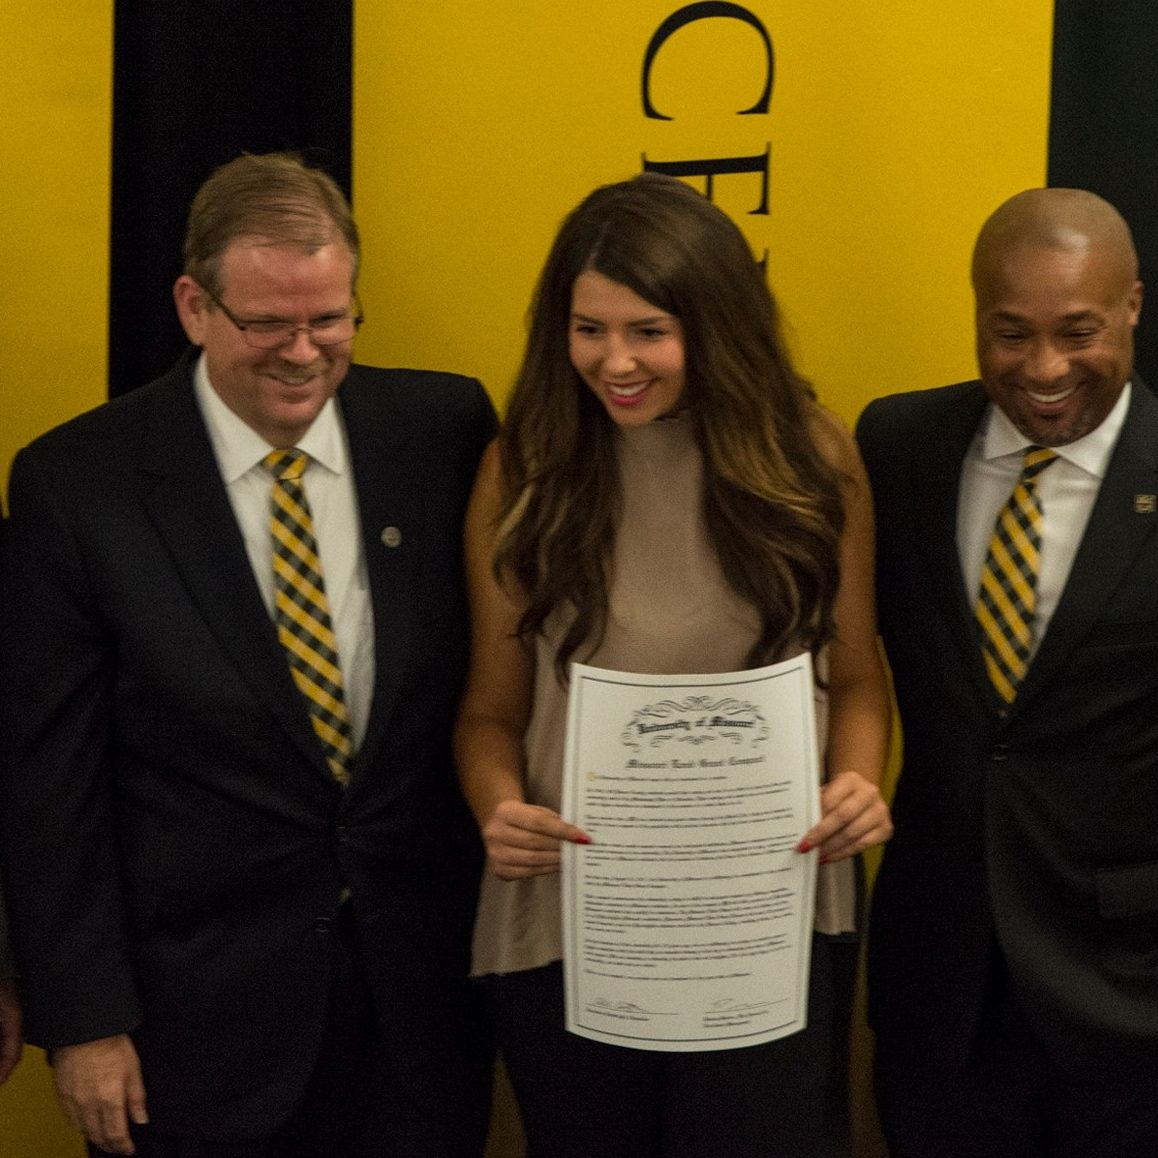 Chancellor Cartwright, Pelema Morrice and others sign Land Grant Compact